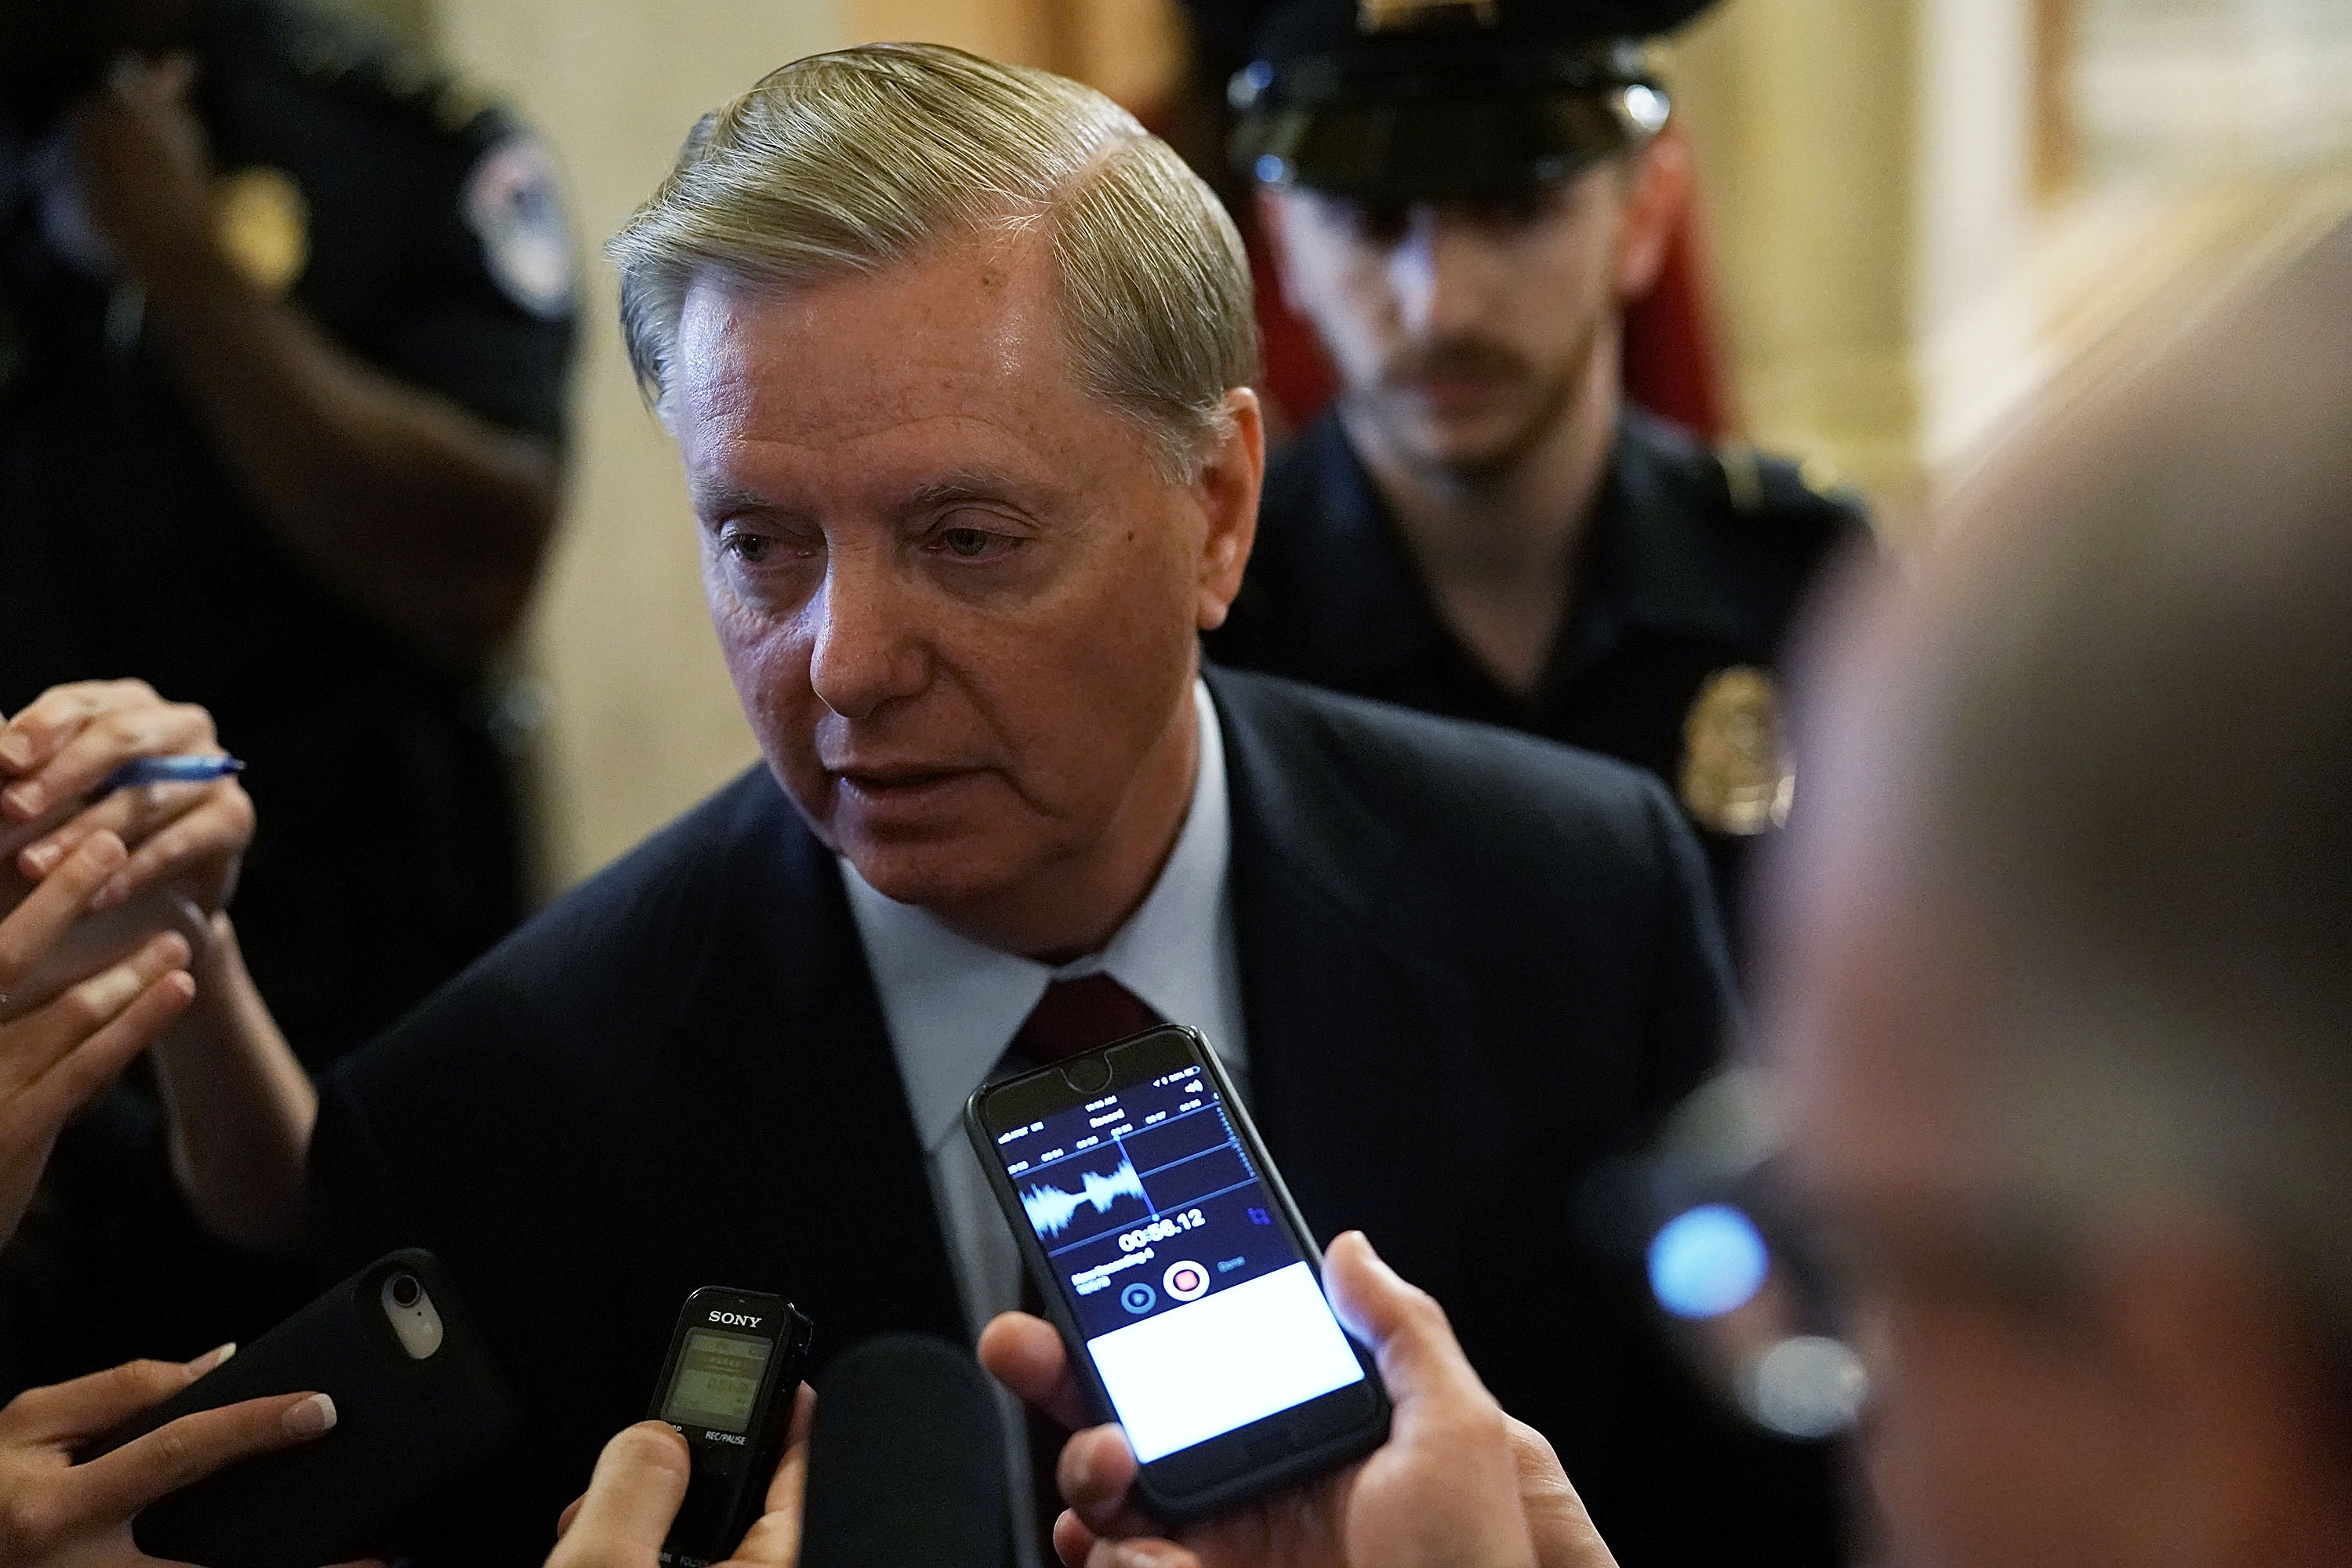 Sen. Lindsey Graham, R-S.C., has fought efforts in Congress to block arms sales to Saudi Arabia. (Alex Wong/Getty Images)